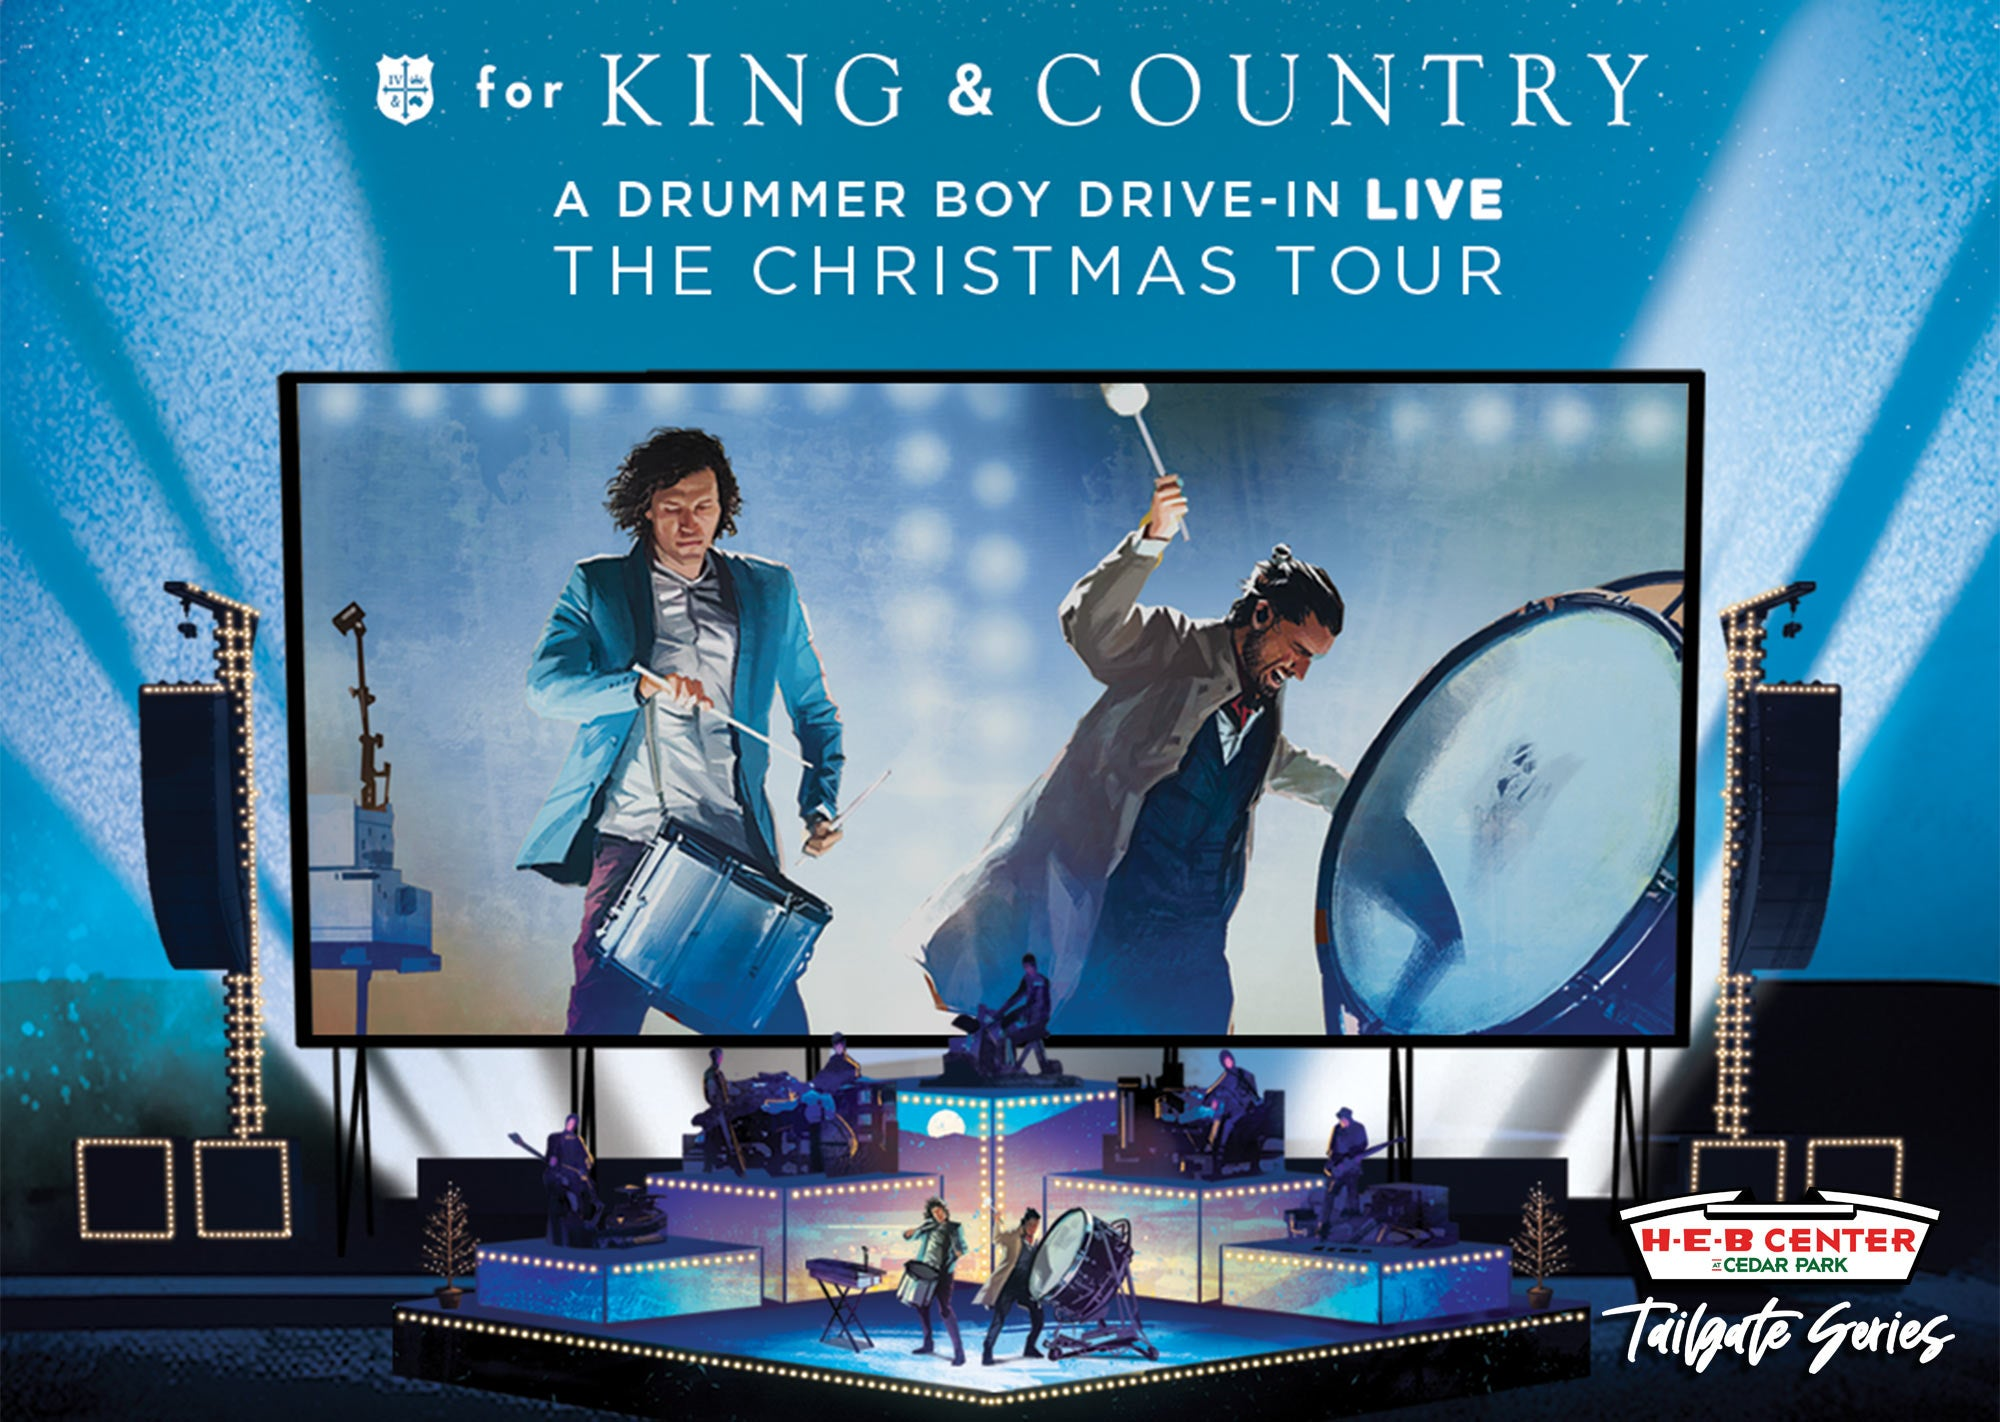 Salty Christmas In The Park 2020 Tailgate Series: for King & Country   SOLD OUT | H E B Center